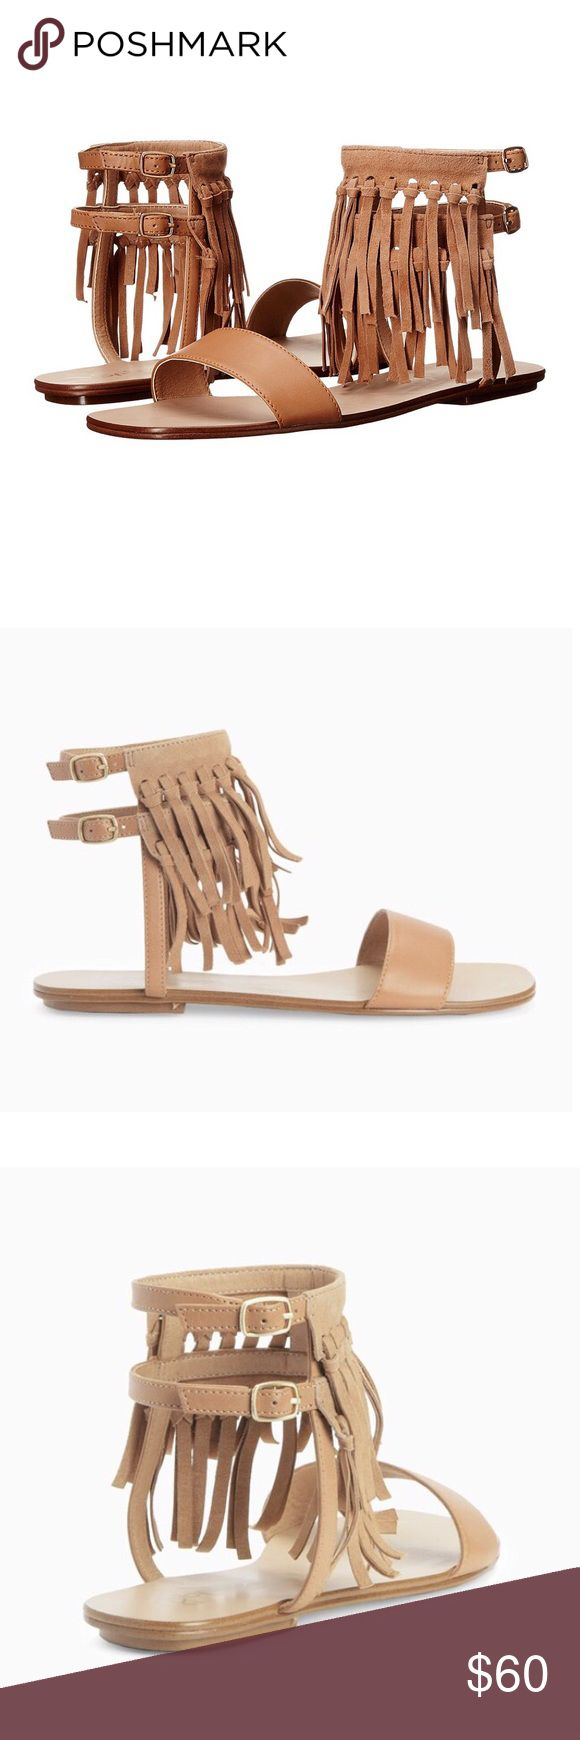 Splendid Fringe Sandals Splendid Fringe Sandals   Sizing: True to size.  - Open toe - Leather and suede construction - Fringe detail - Dual ankle straps with adjustable buckle closures - Imported -Retail $118  Materials: Leather upper, manmade sole  Brand new, never worn. No trades.  *please comment if looking for a size not listed. Splendid Shoes Sandals